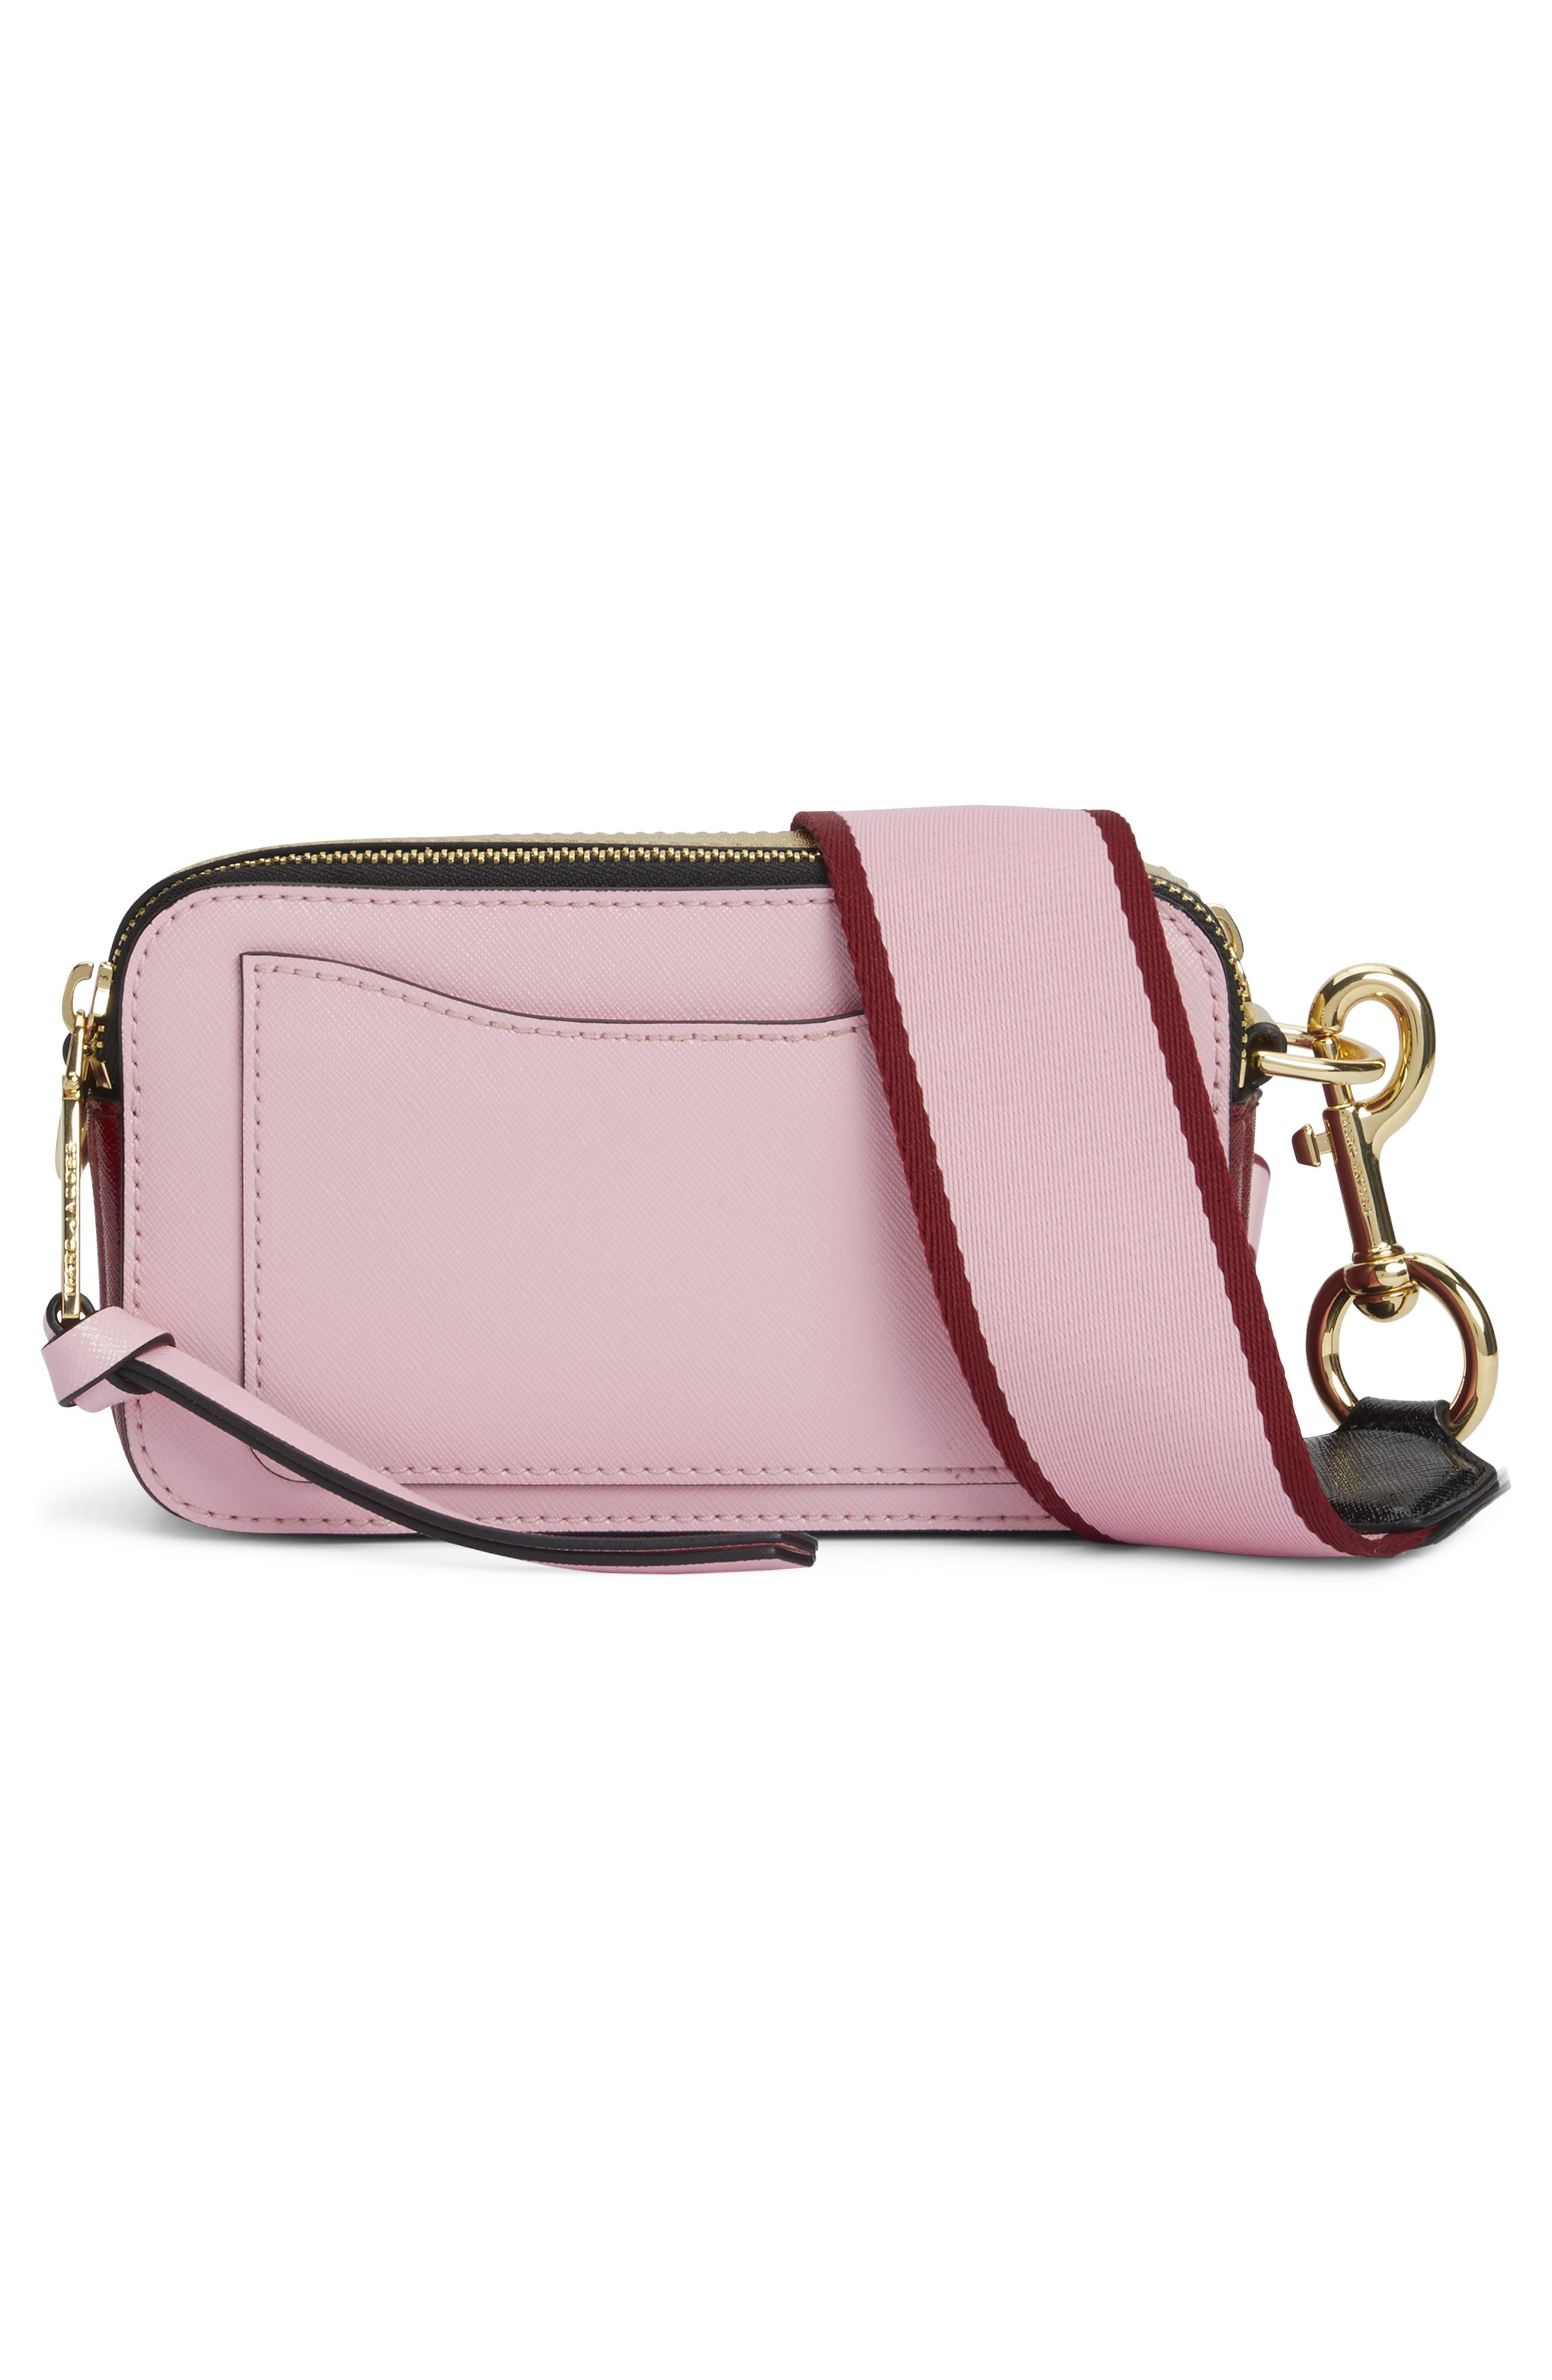 MARC JACOBS,                             Snapshot Crossbody Bag,                             Alternate thumbnail 3, color,                             BABY PINK/ RED